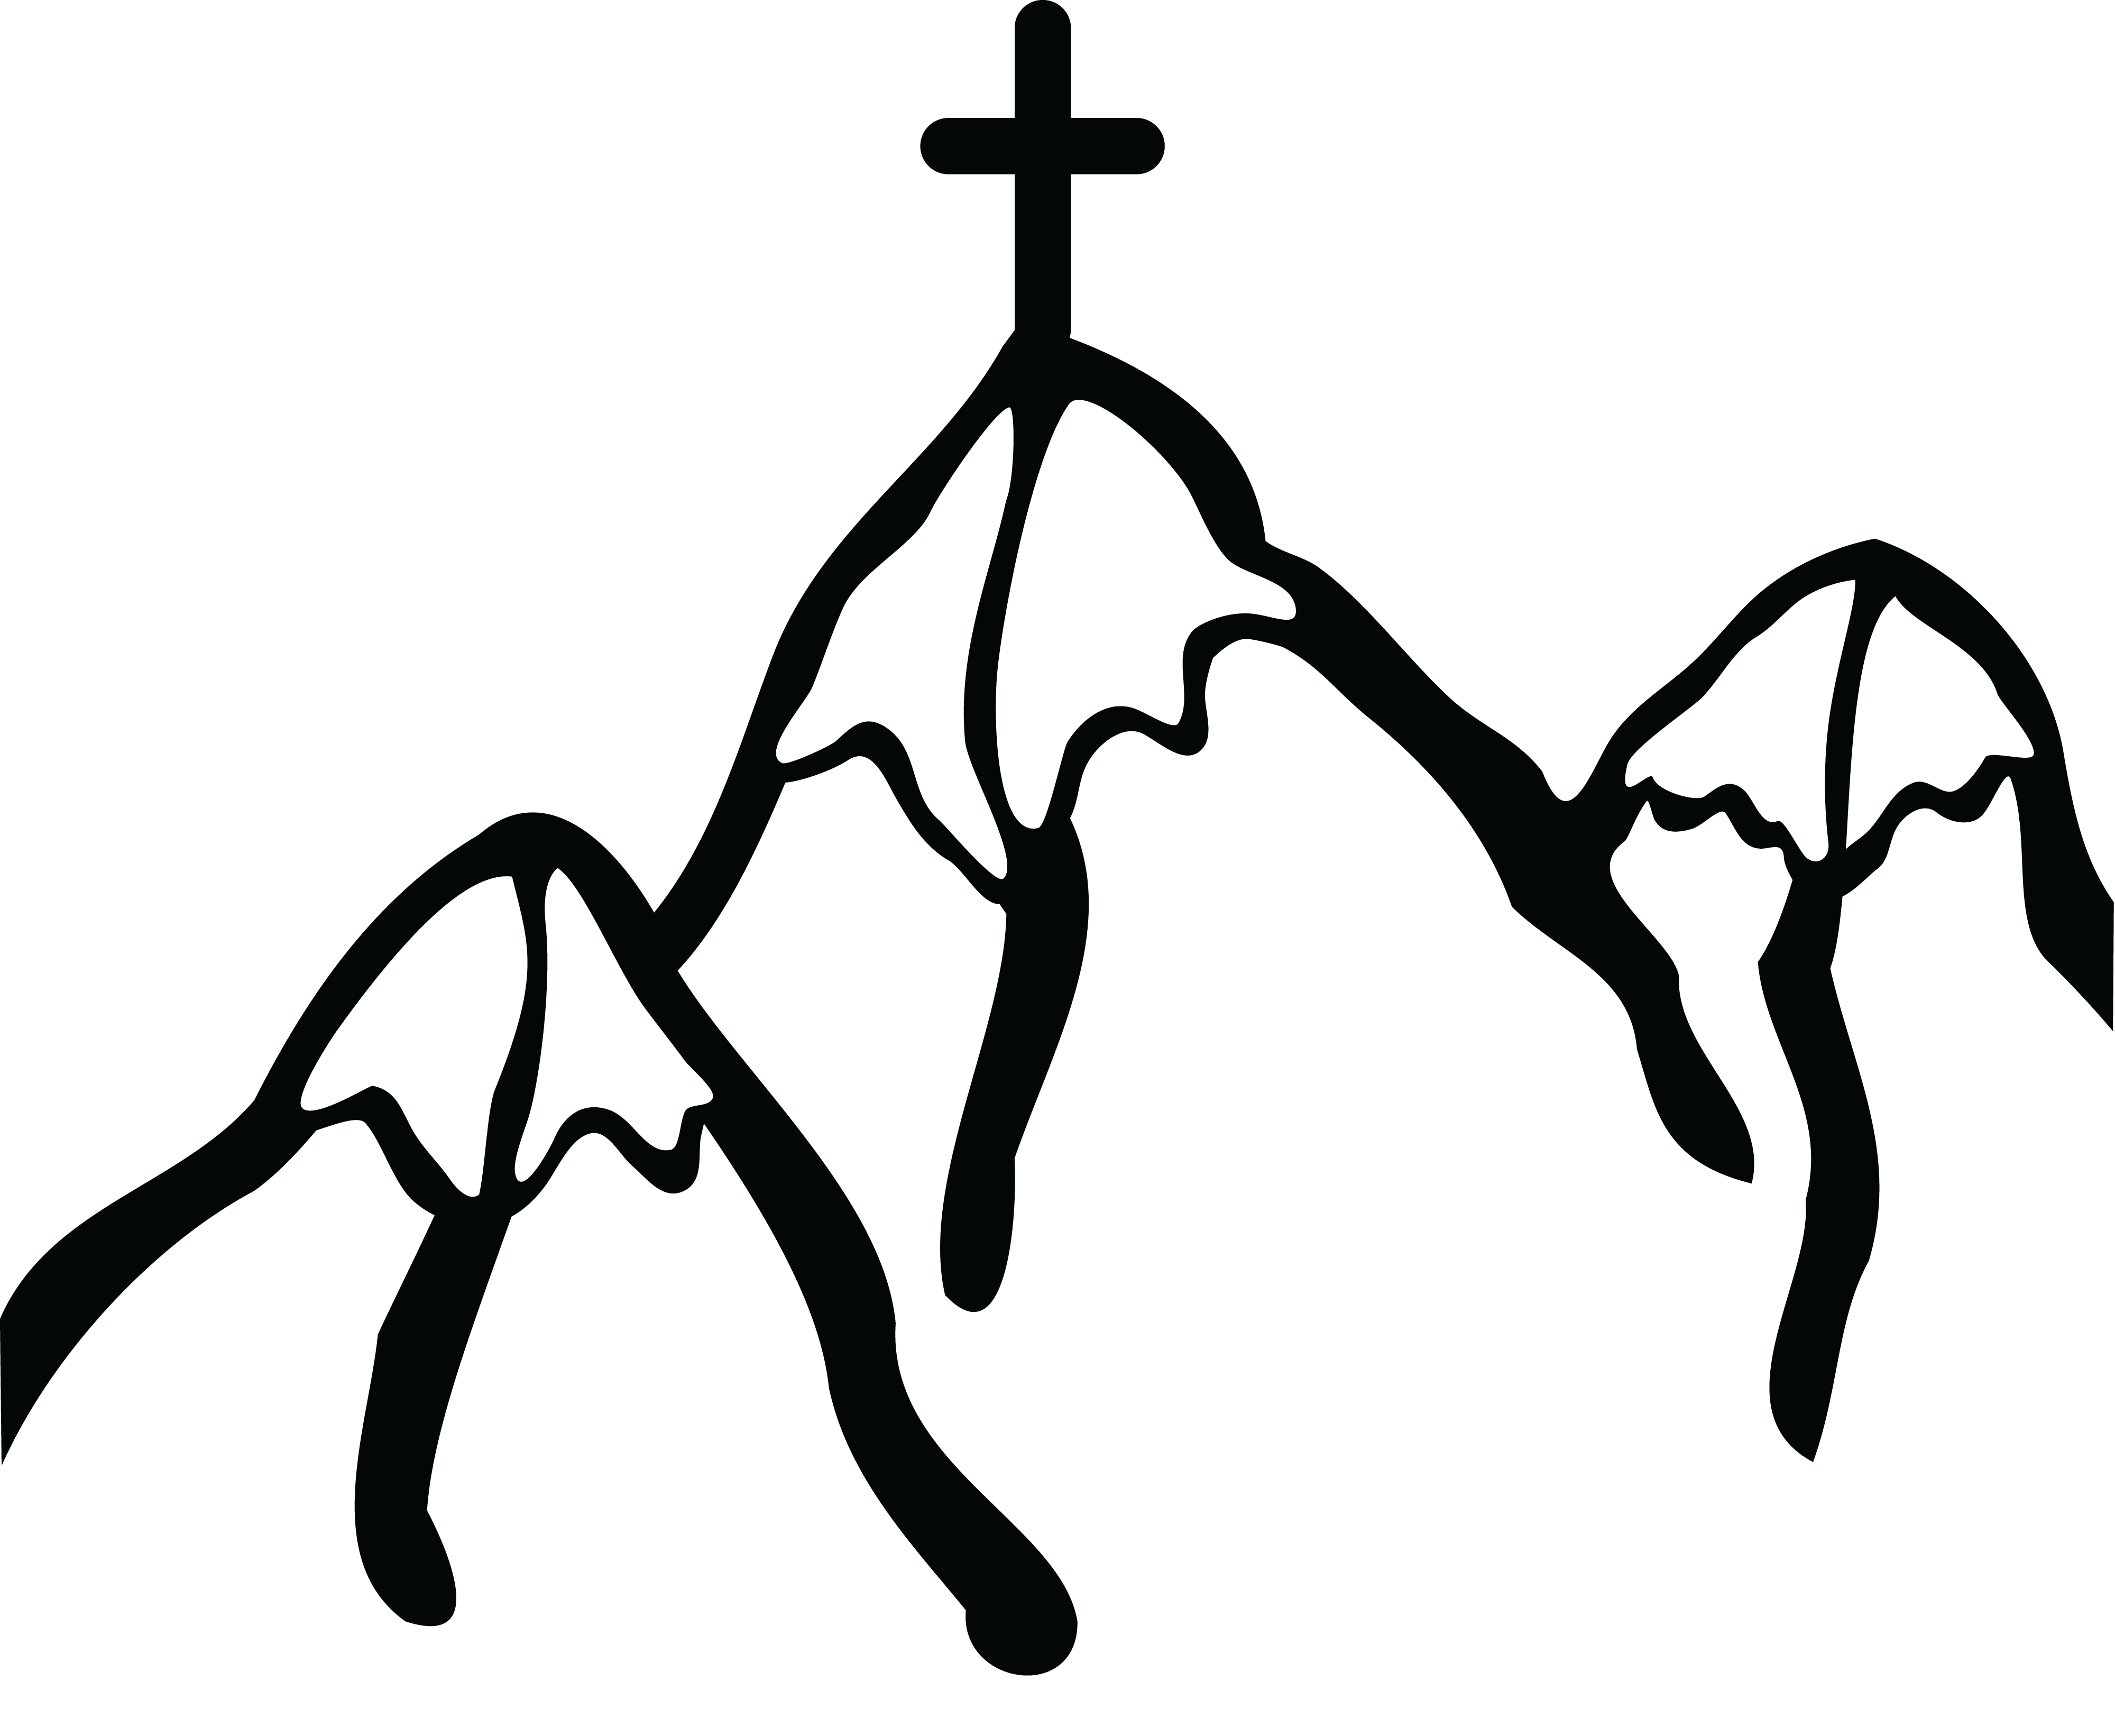 Free Clipart Of A Cross on Mountains #00011038 .